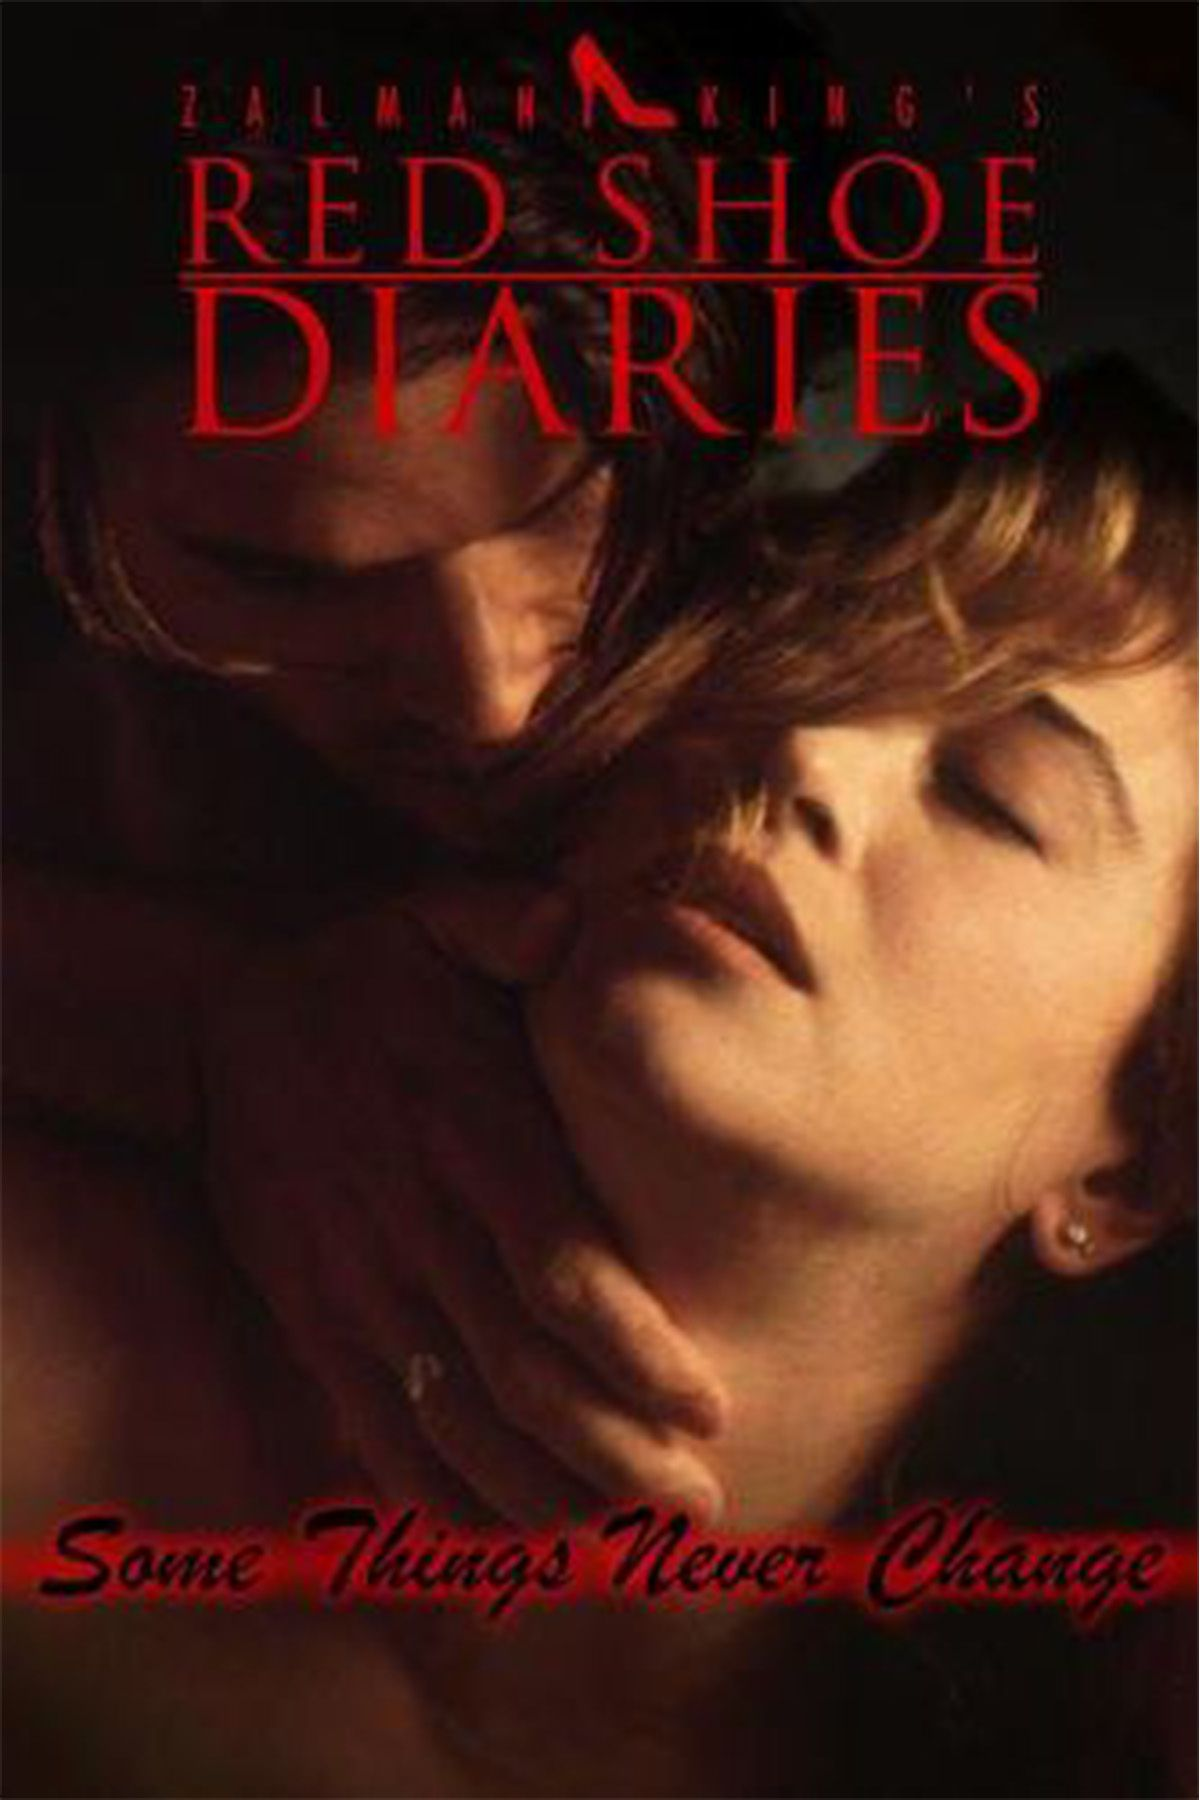 Watch Red Shoe Diaries Episodes Online Free  E2 86 Ba Best Women S Erotica 12 Sexy Adult Stories For Women To Read Now